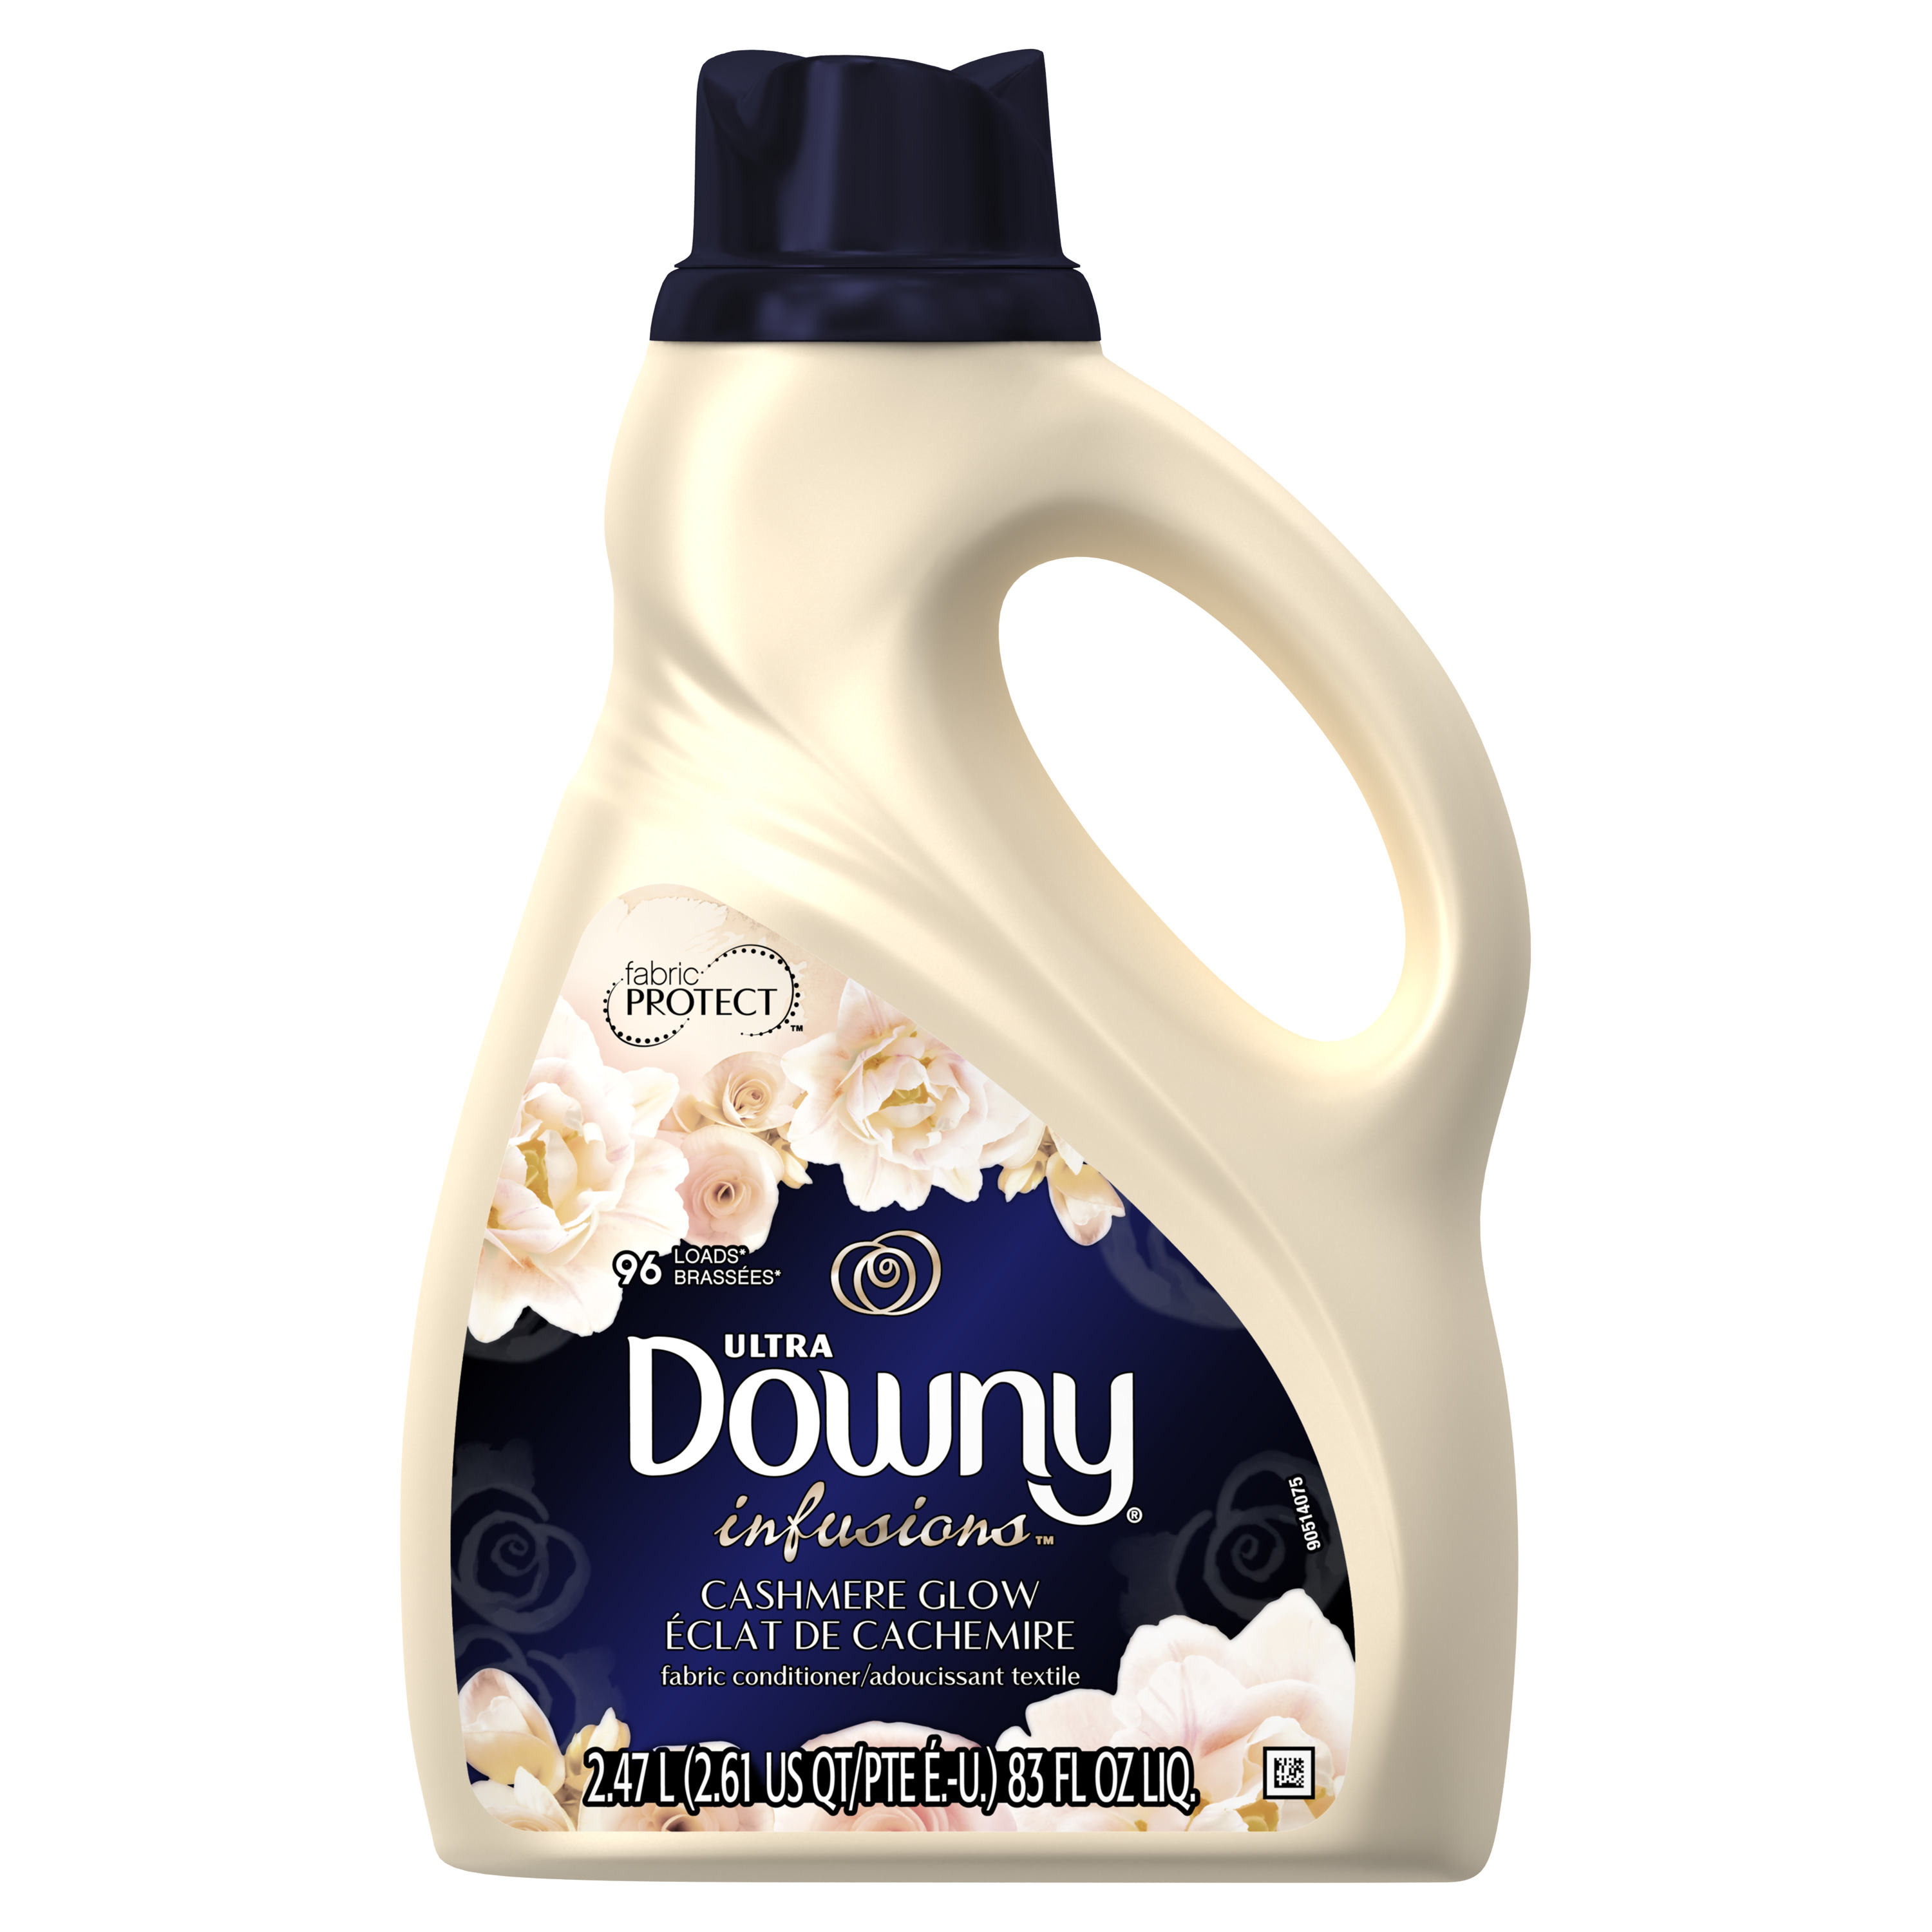 Downy Infusions Fabric Softener, Cashmere Glow, 83 Oz by Procter & Gamble